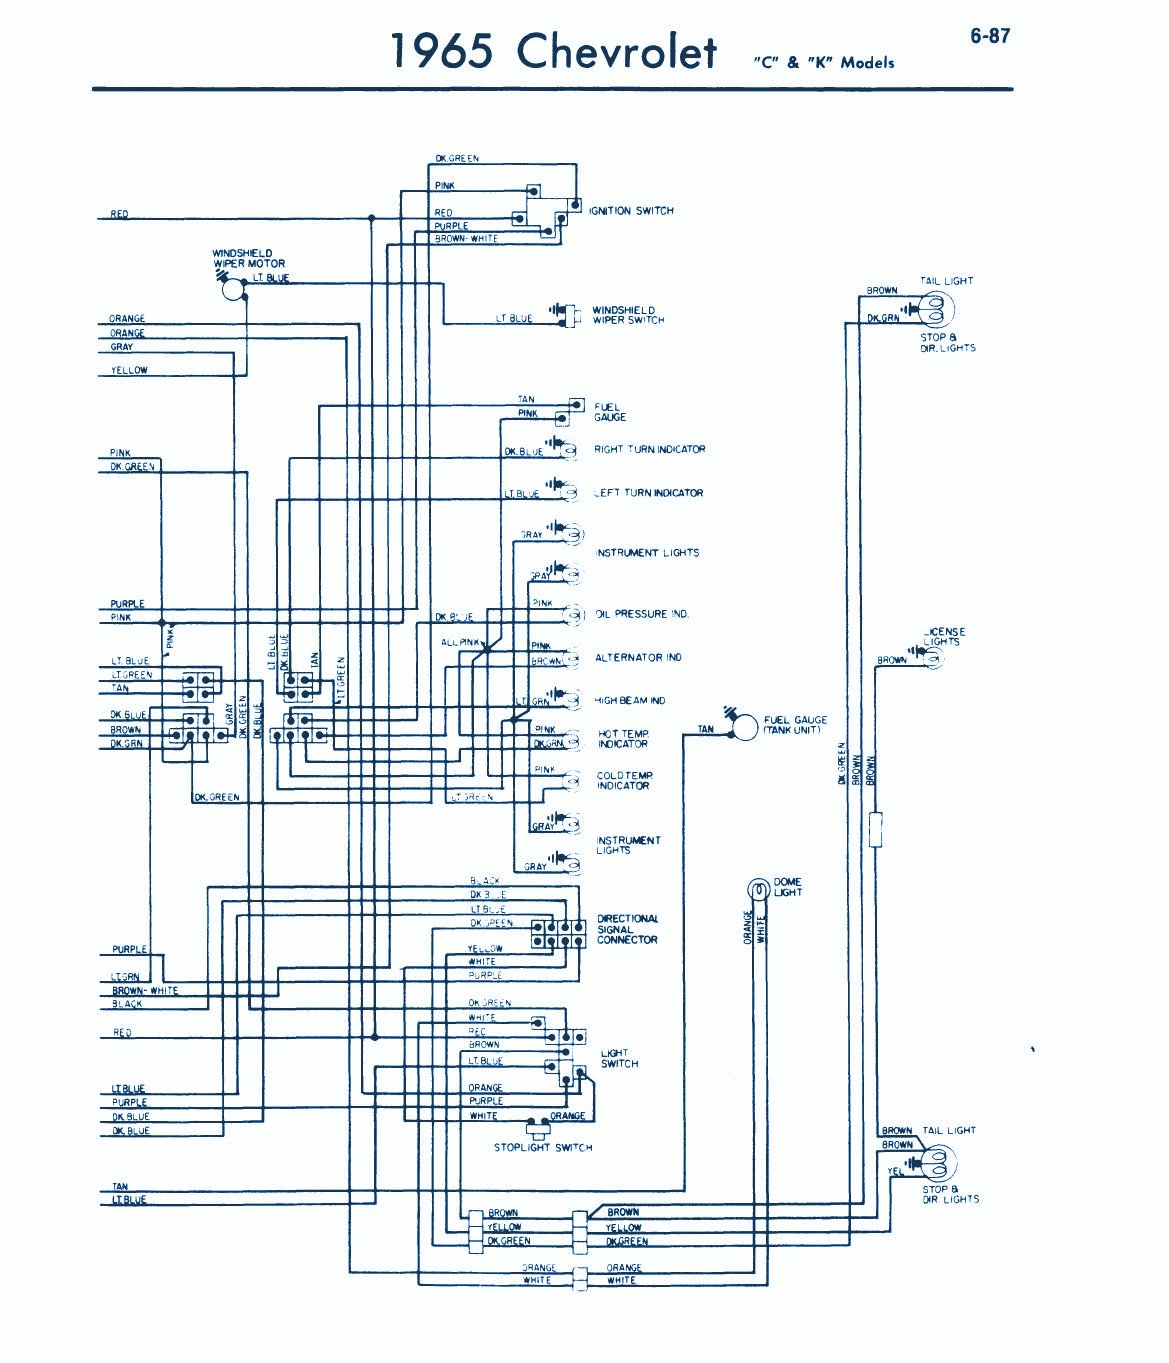 Wiring Diagram 1965 Chevy Impala Diagrams For 1960 Truck Ignition Switch Free 1963 Under Dash